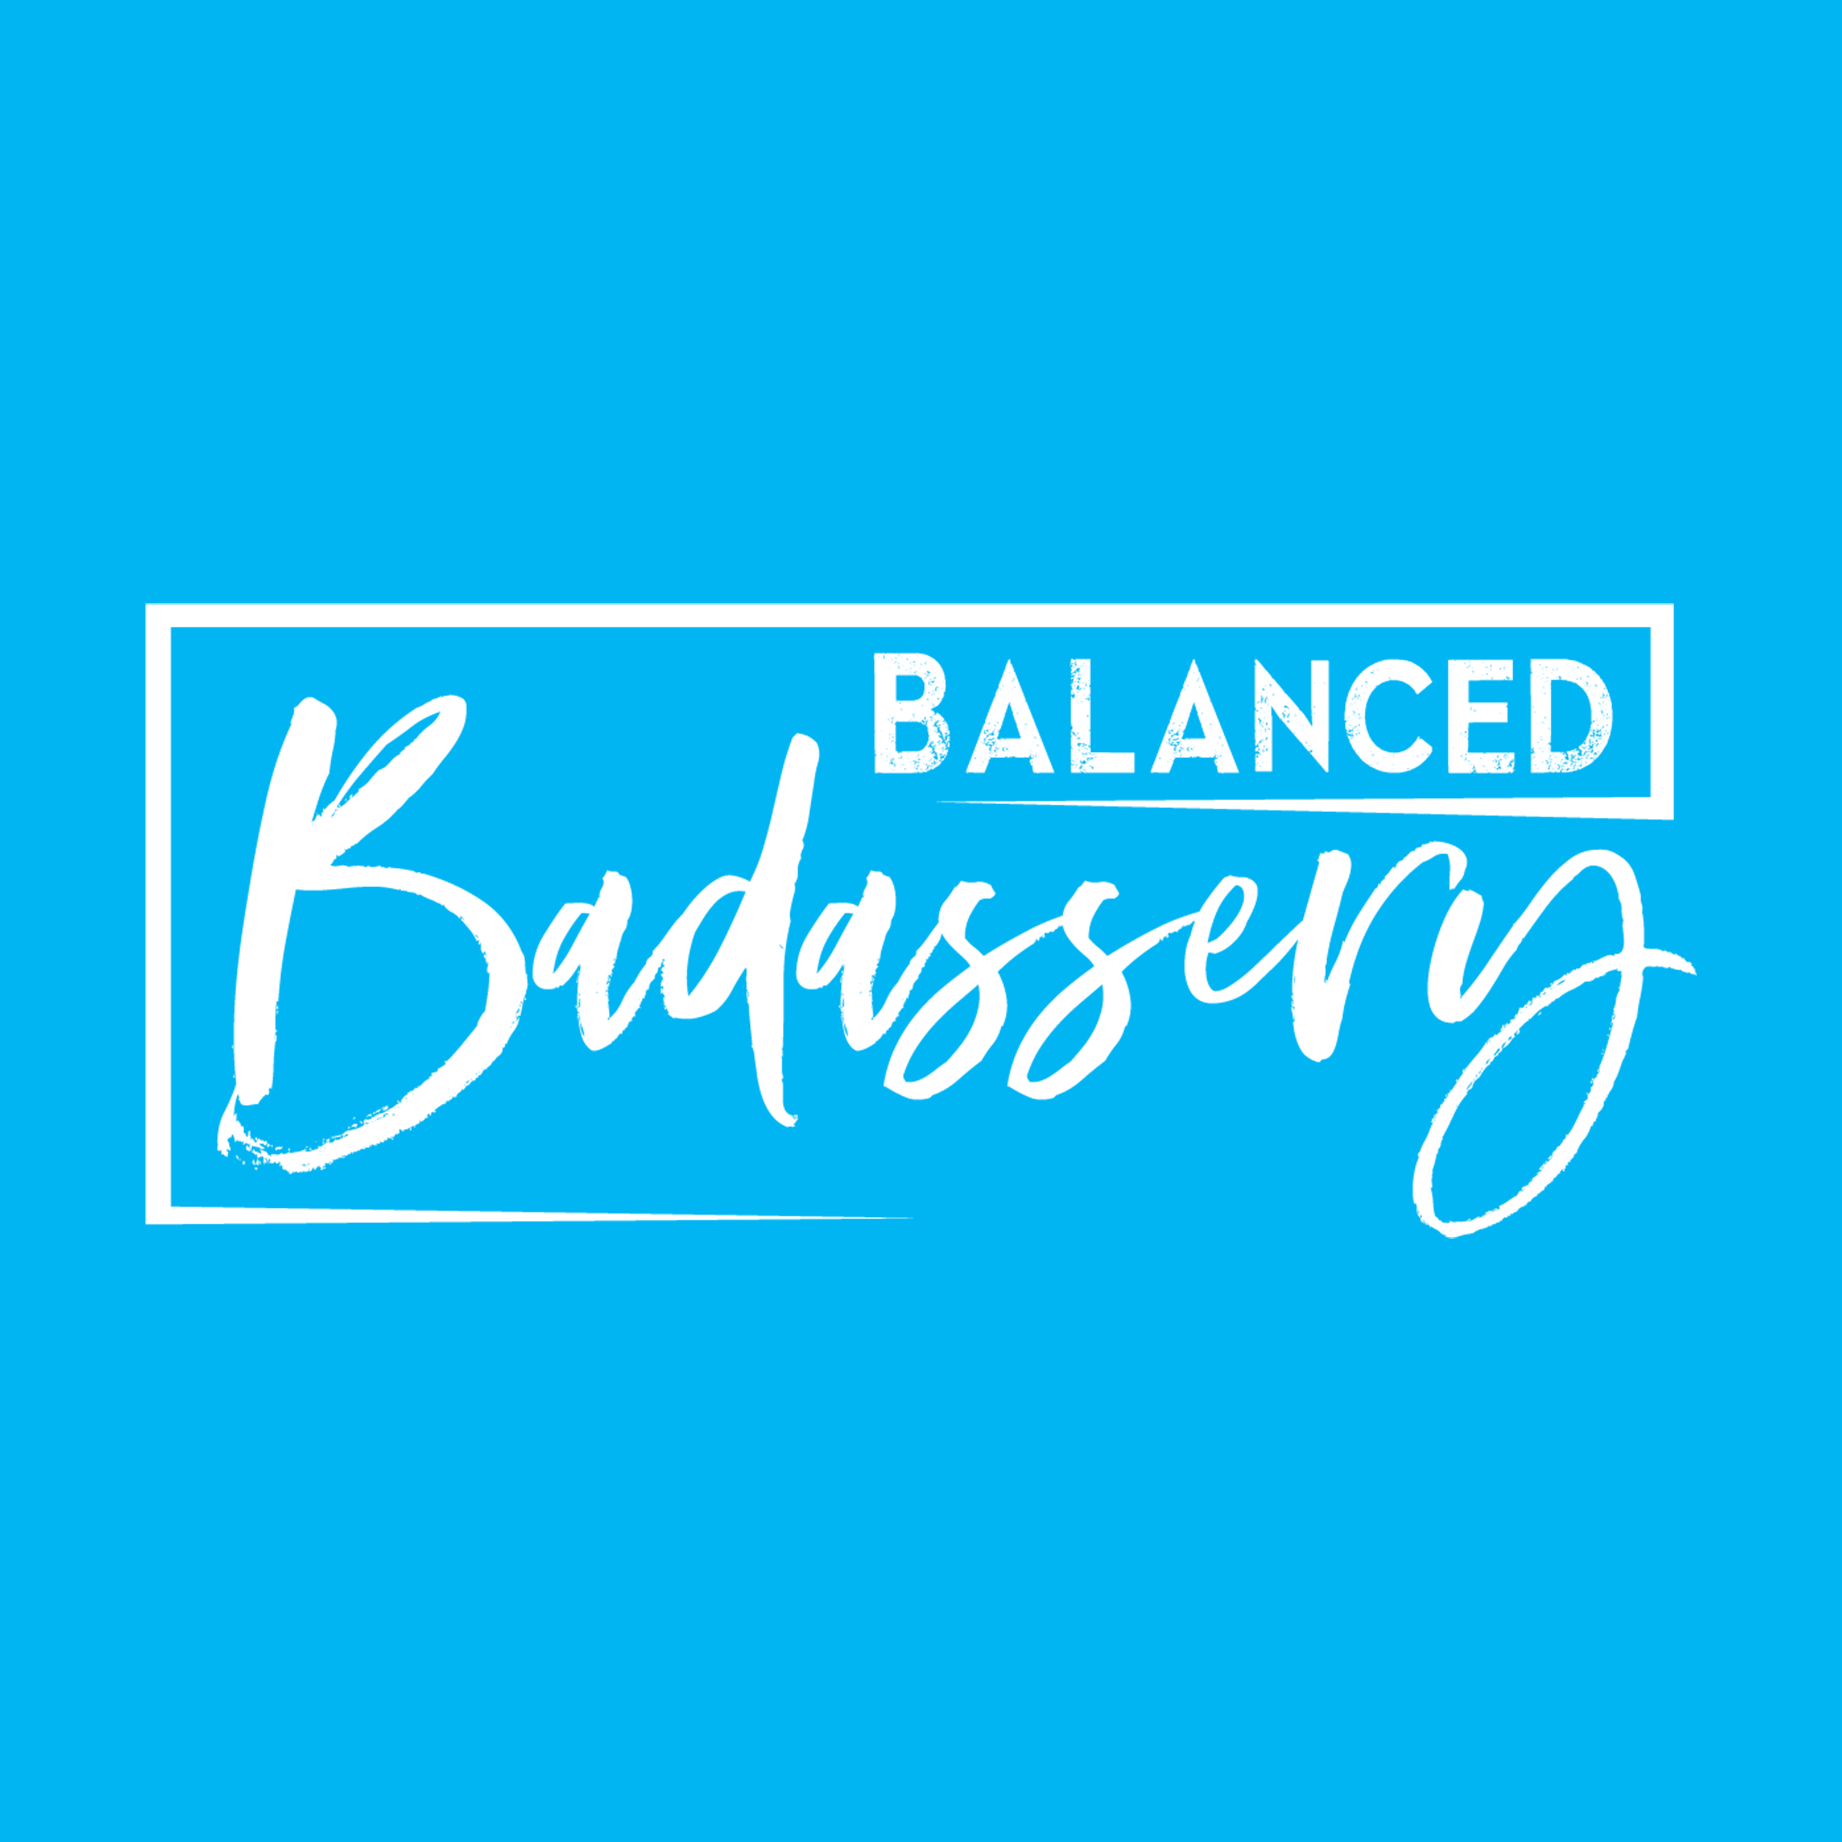 Balanced Badassery - Host: Alli WaddellWho doesn't want a life of blissful balance and boundless badassery? Well, get the hell ready because every week Alli is bringing you the top minds in wellness to share their tips, tricks, and practices for building a badass life. Not only will you learn from the best, Alli follows up every interview with an implementation show to help you turn information into transformation (yes, it's badass homework). From nutrition, to sex and relationships, to movement and more, we explore the key pillars of what makes humans happy, healthy, and thriving in today's crazy world. Together let's learn how to put it all together and build lives that blow the world away with badassery.Click HERE for the show's websiteClick HERE to watch the show on YouTube